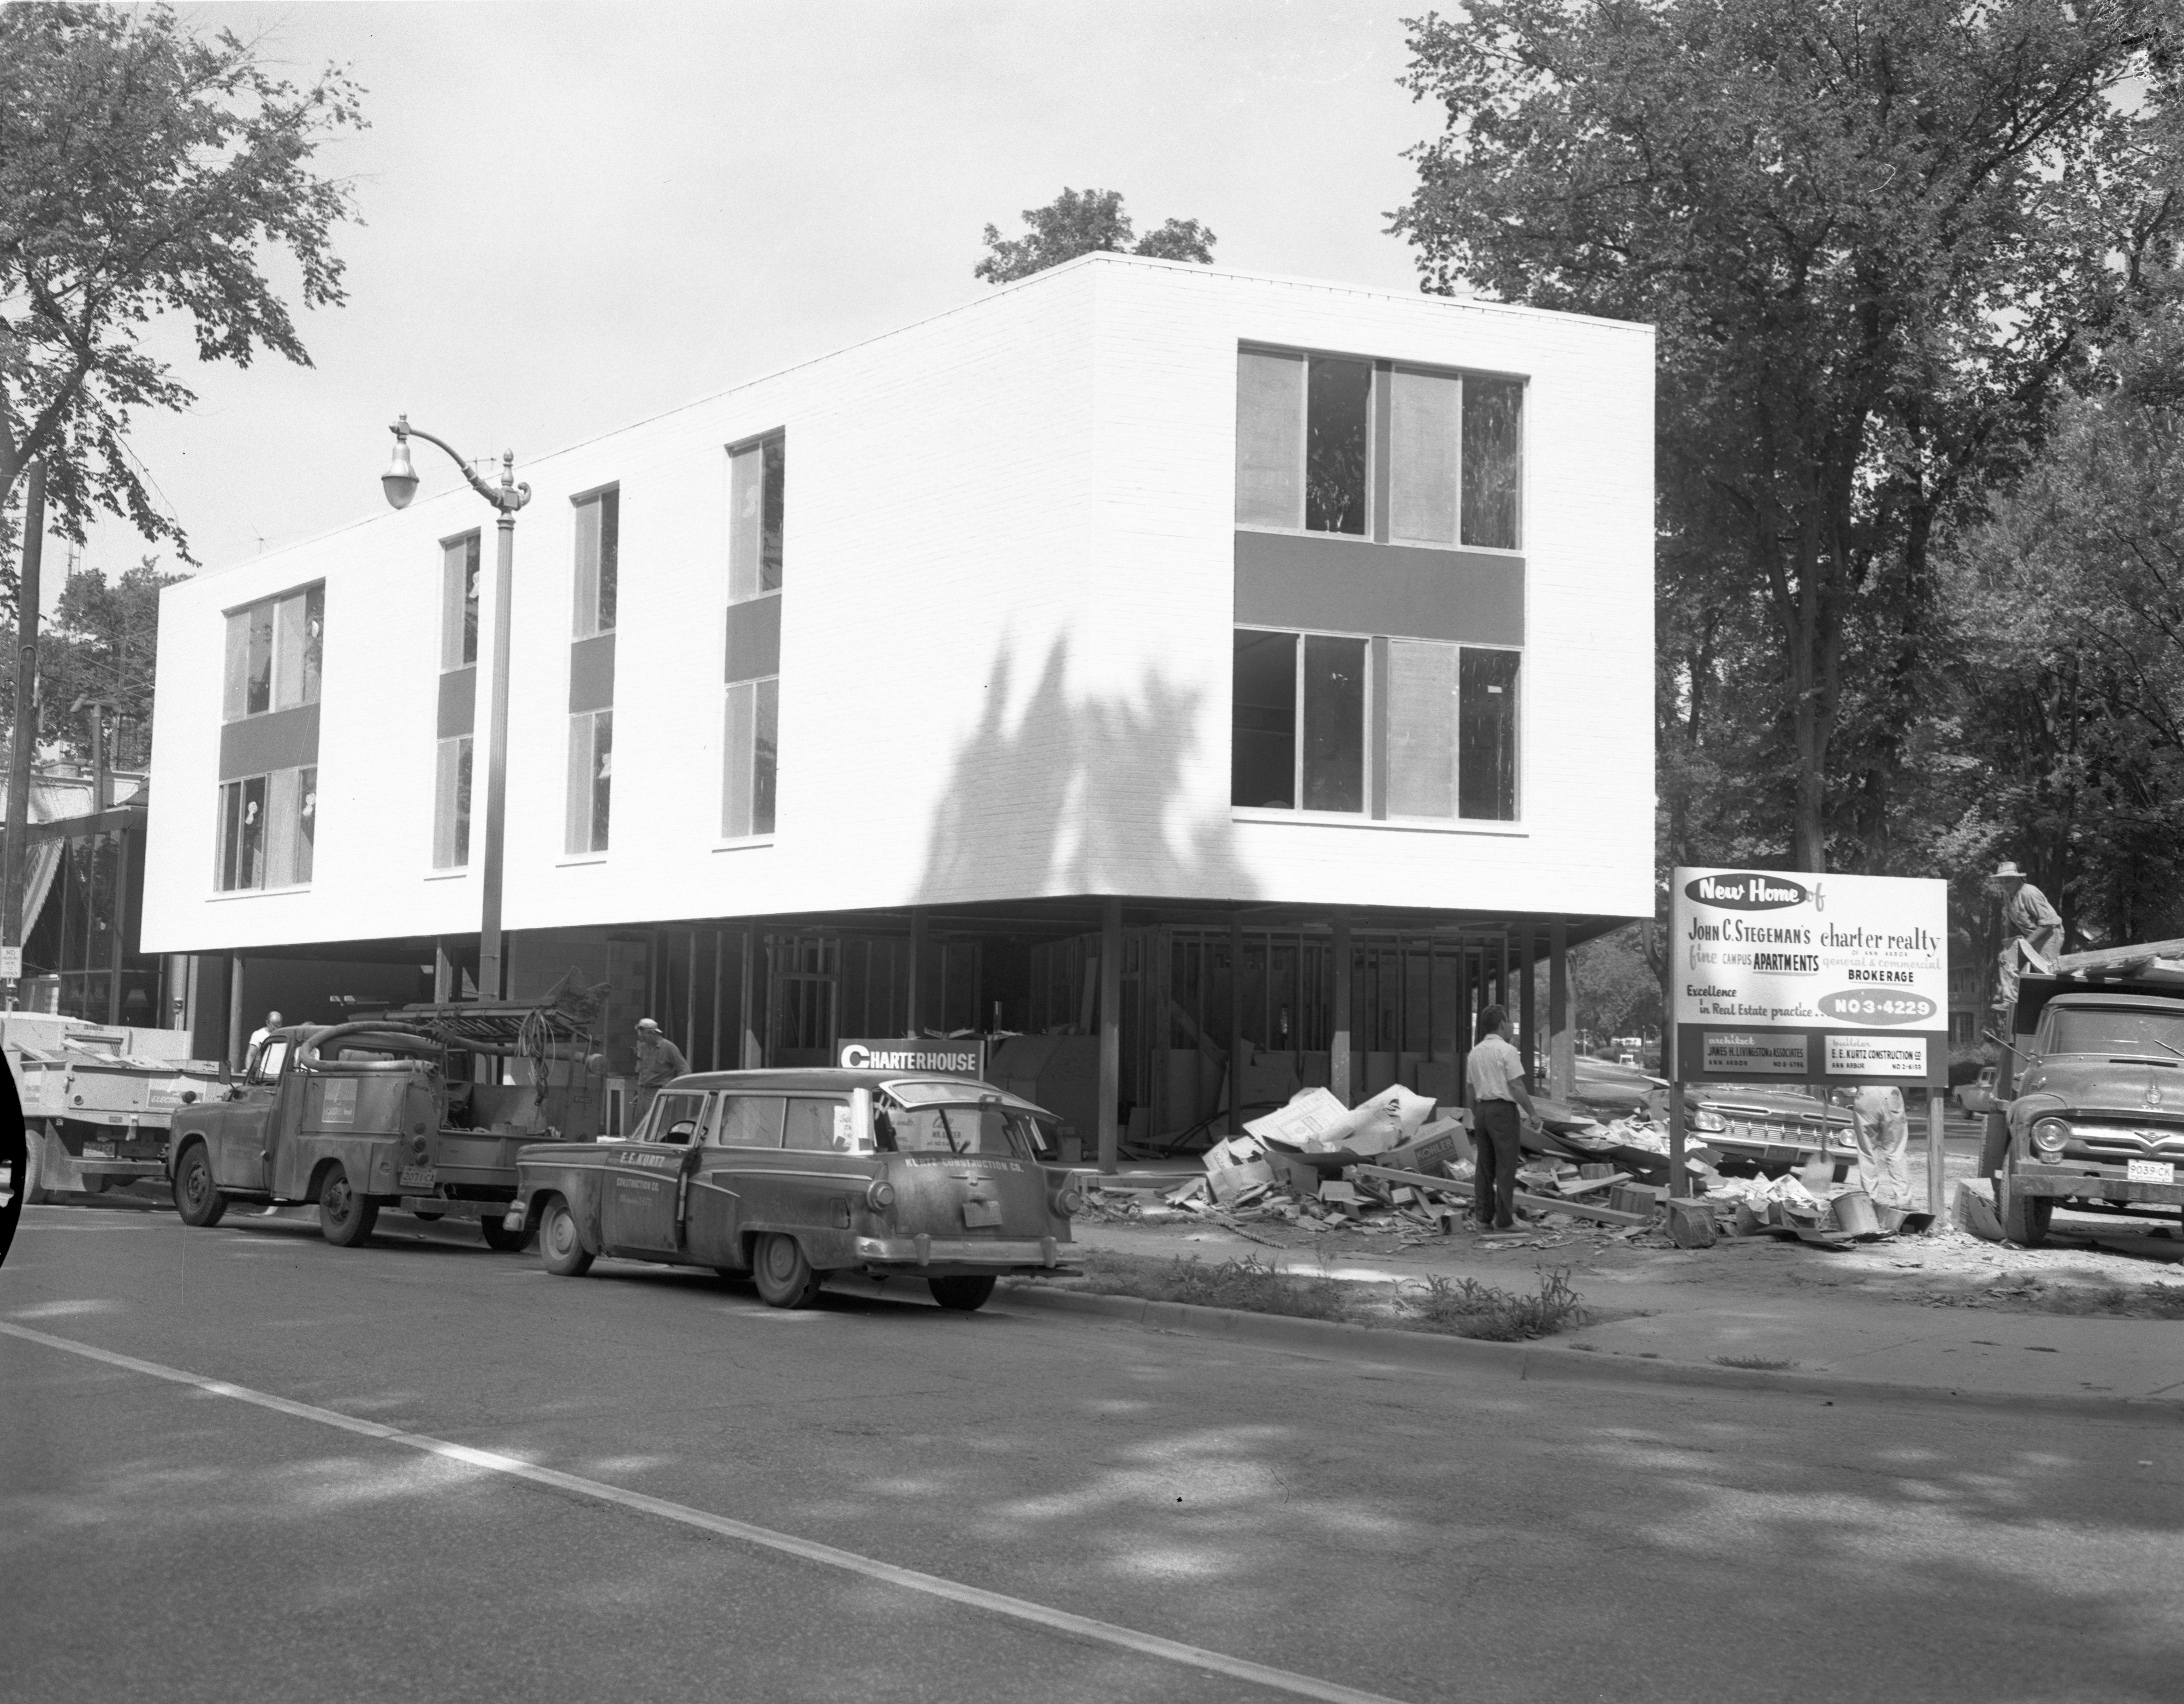 Construction Of The Charter House - 1335 South University, September 1961 image